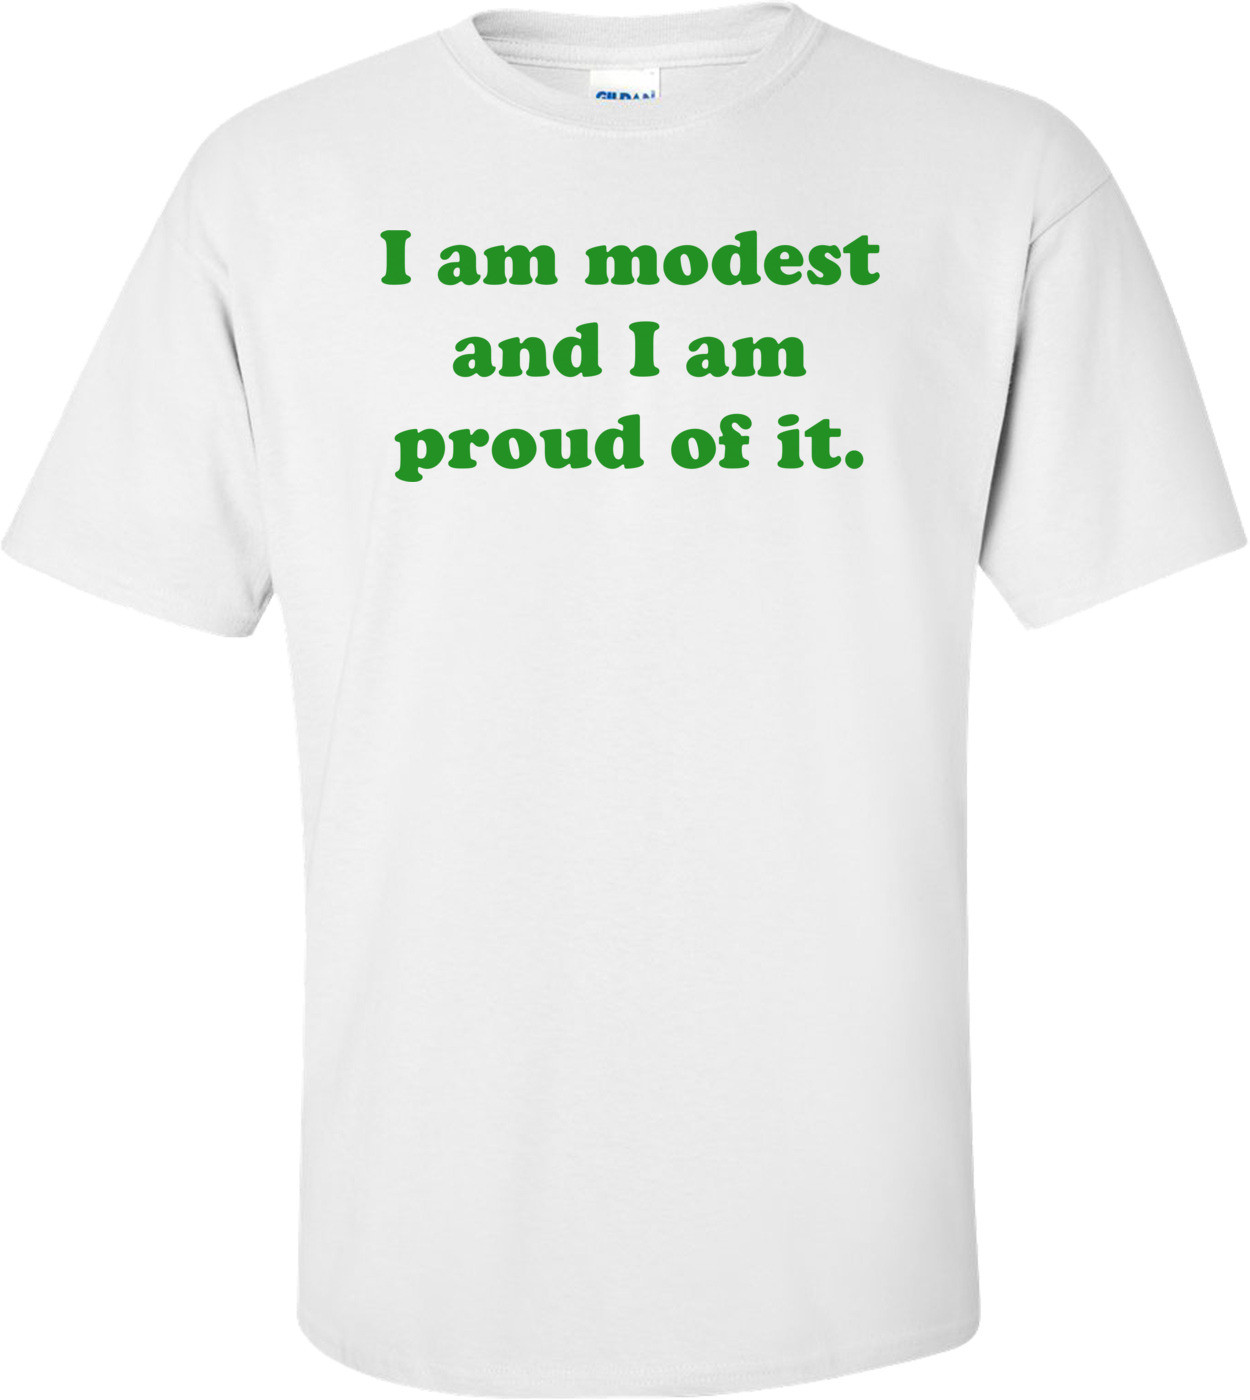 I am modest and I am proud of it. Shirt